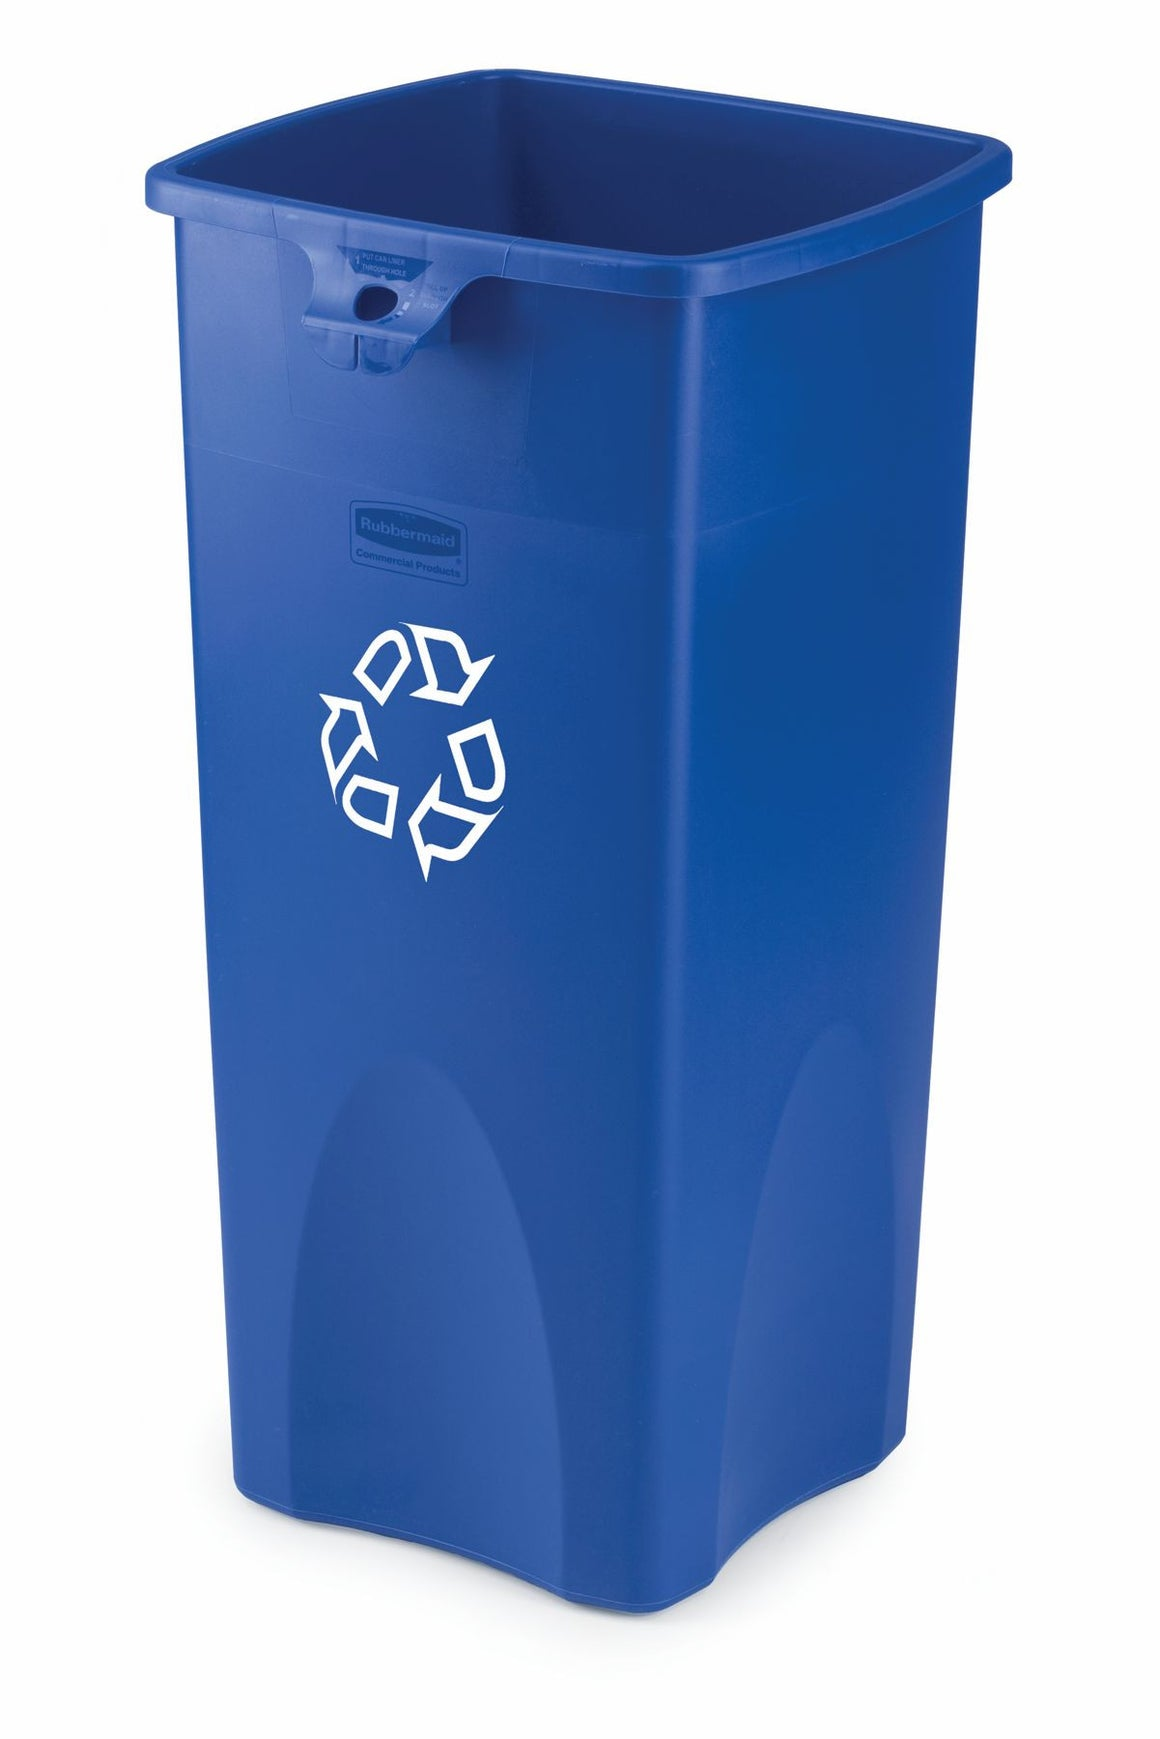 UT SQ RECYCLING CONTAINER BLUE